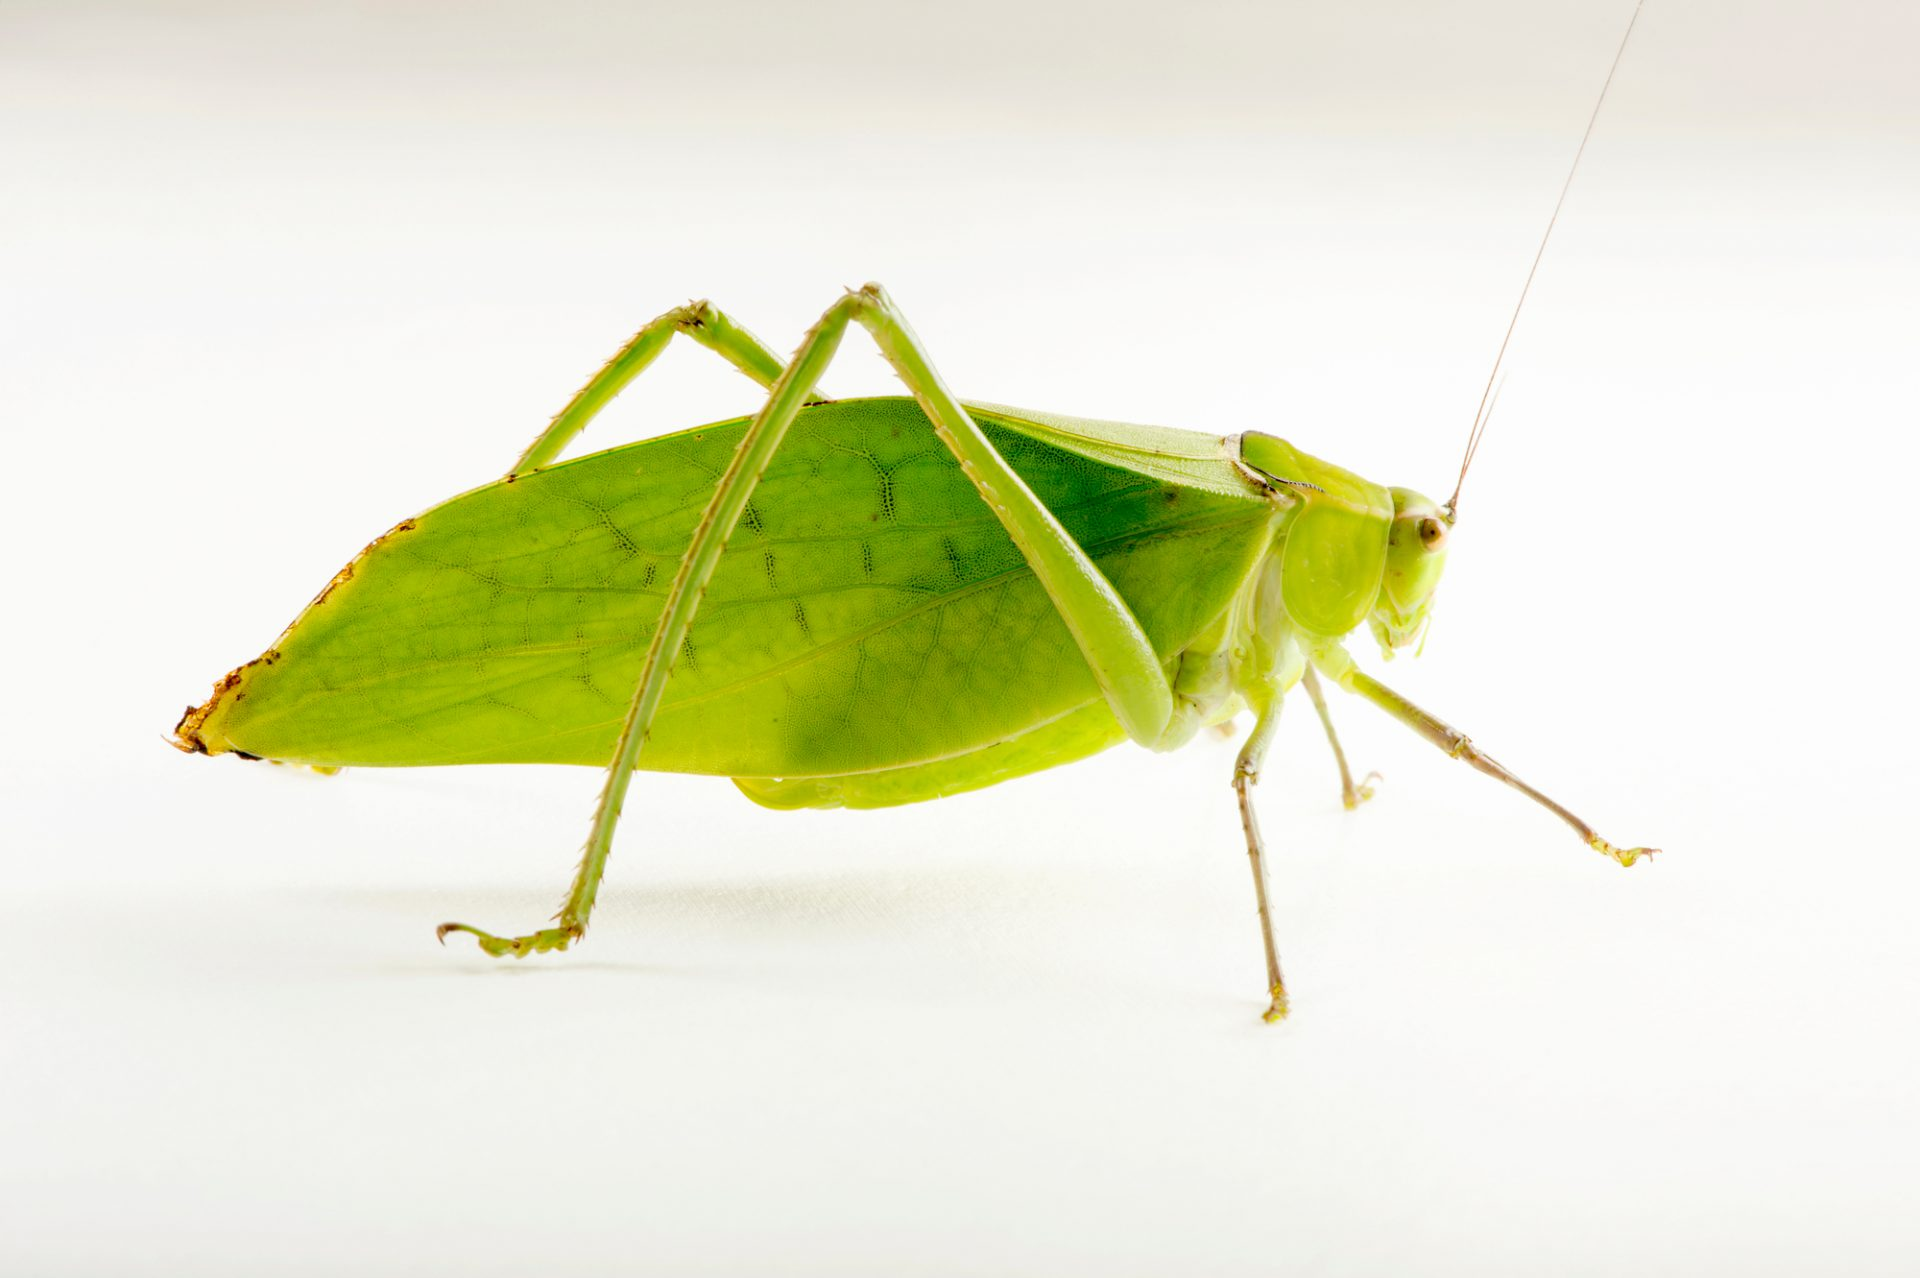 Photo: Giant katydid (Stilpnochlora couloniana) at the Budapest Zoo.